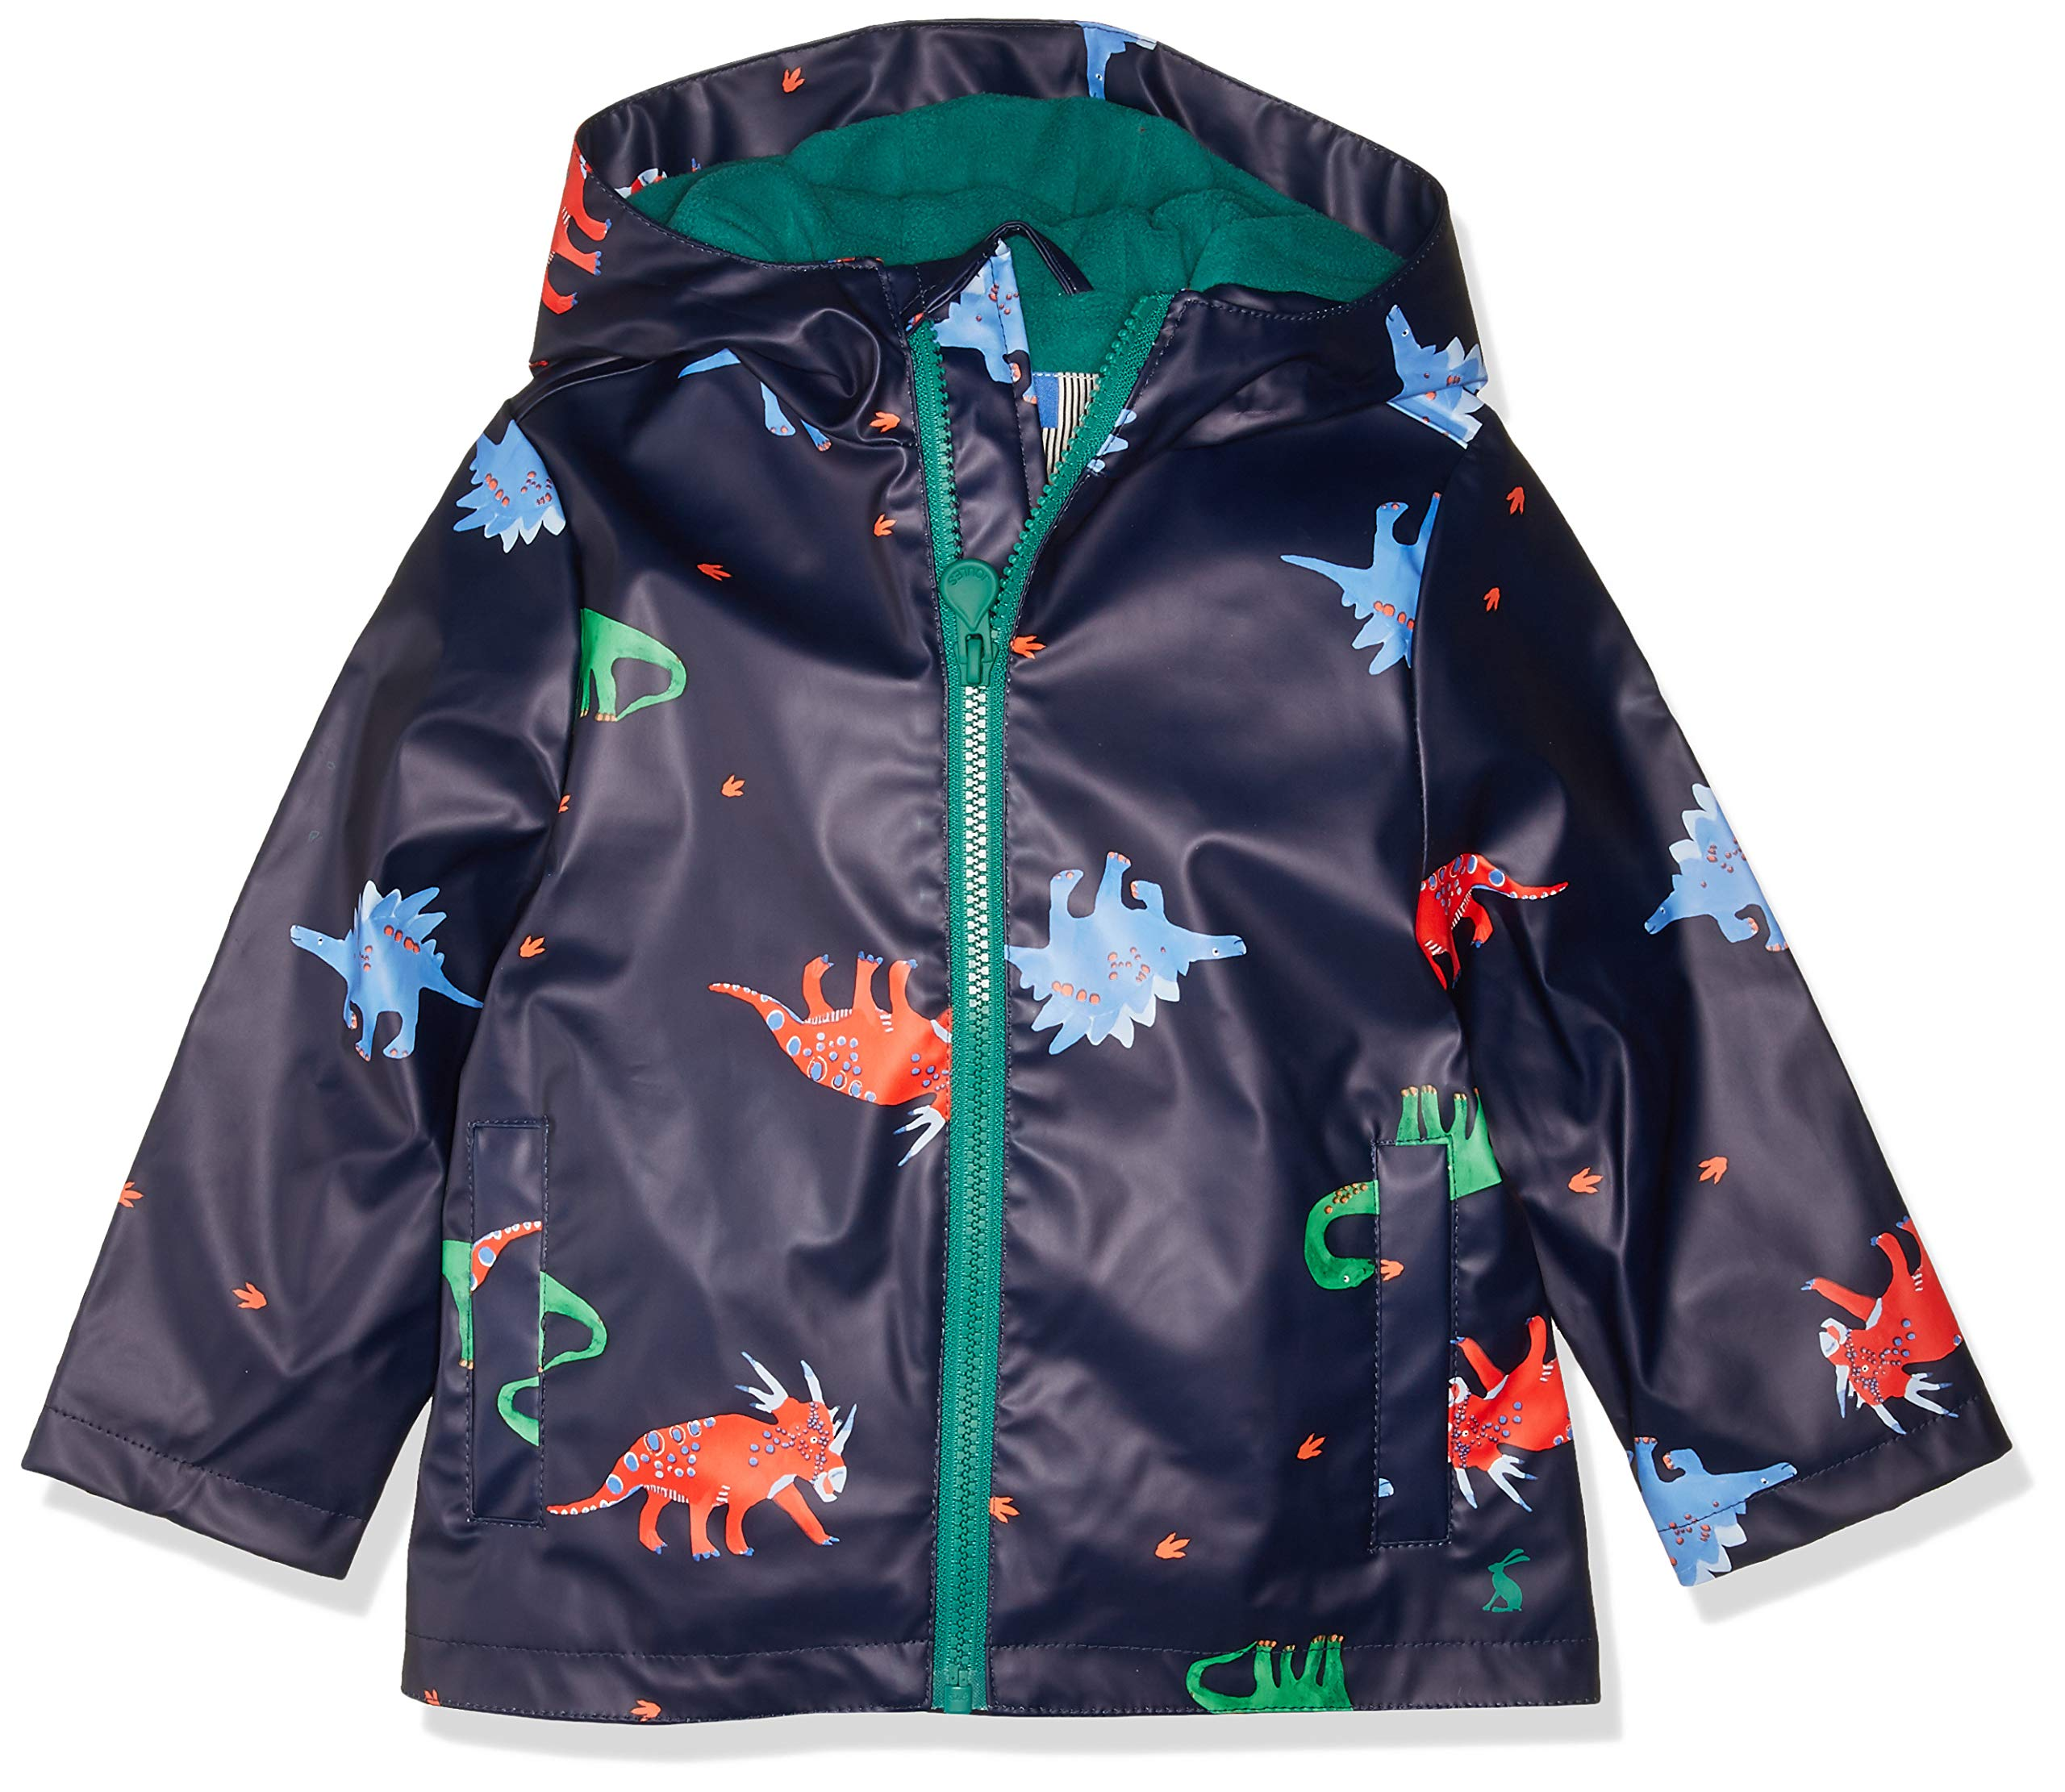 Joules Outerwear Boys' Little Skipper, Navydinos, 4 by Joules Outerwear